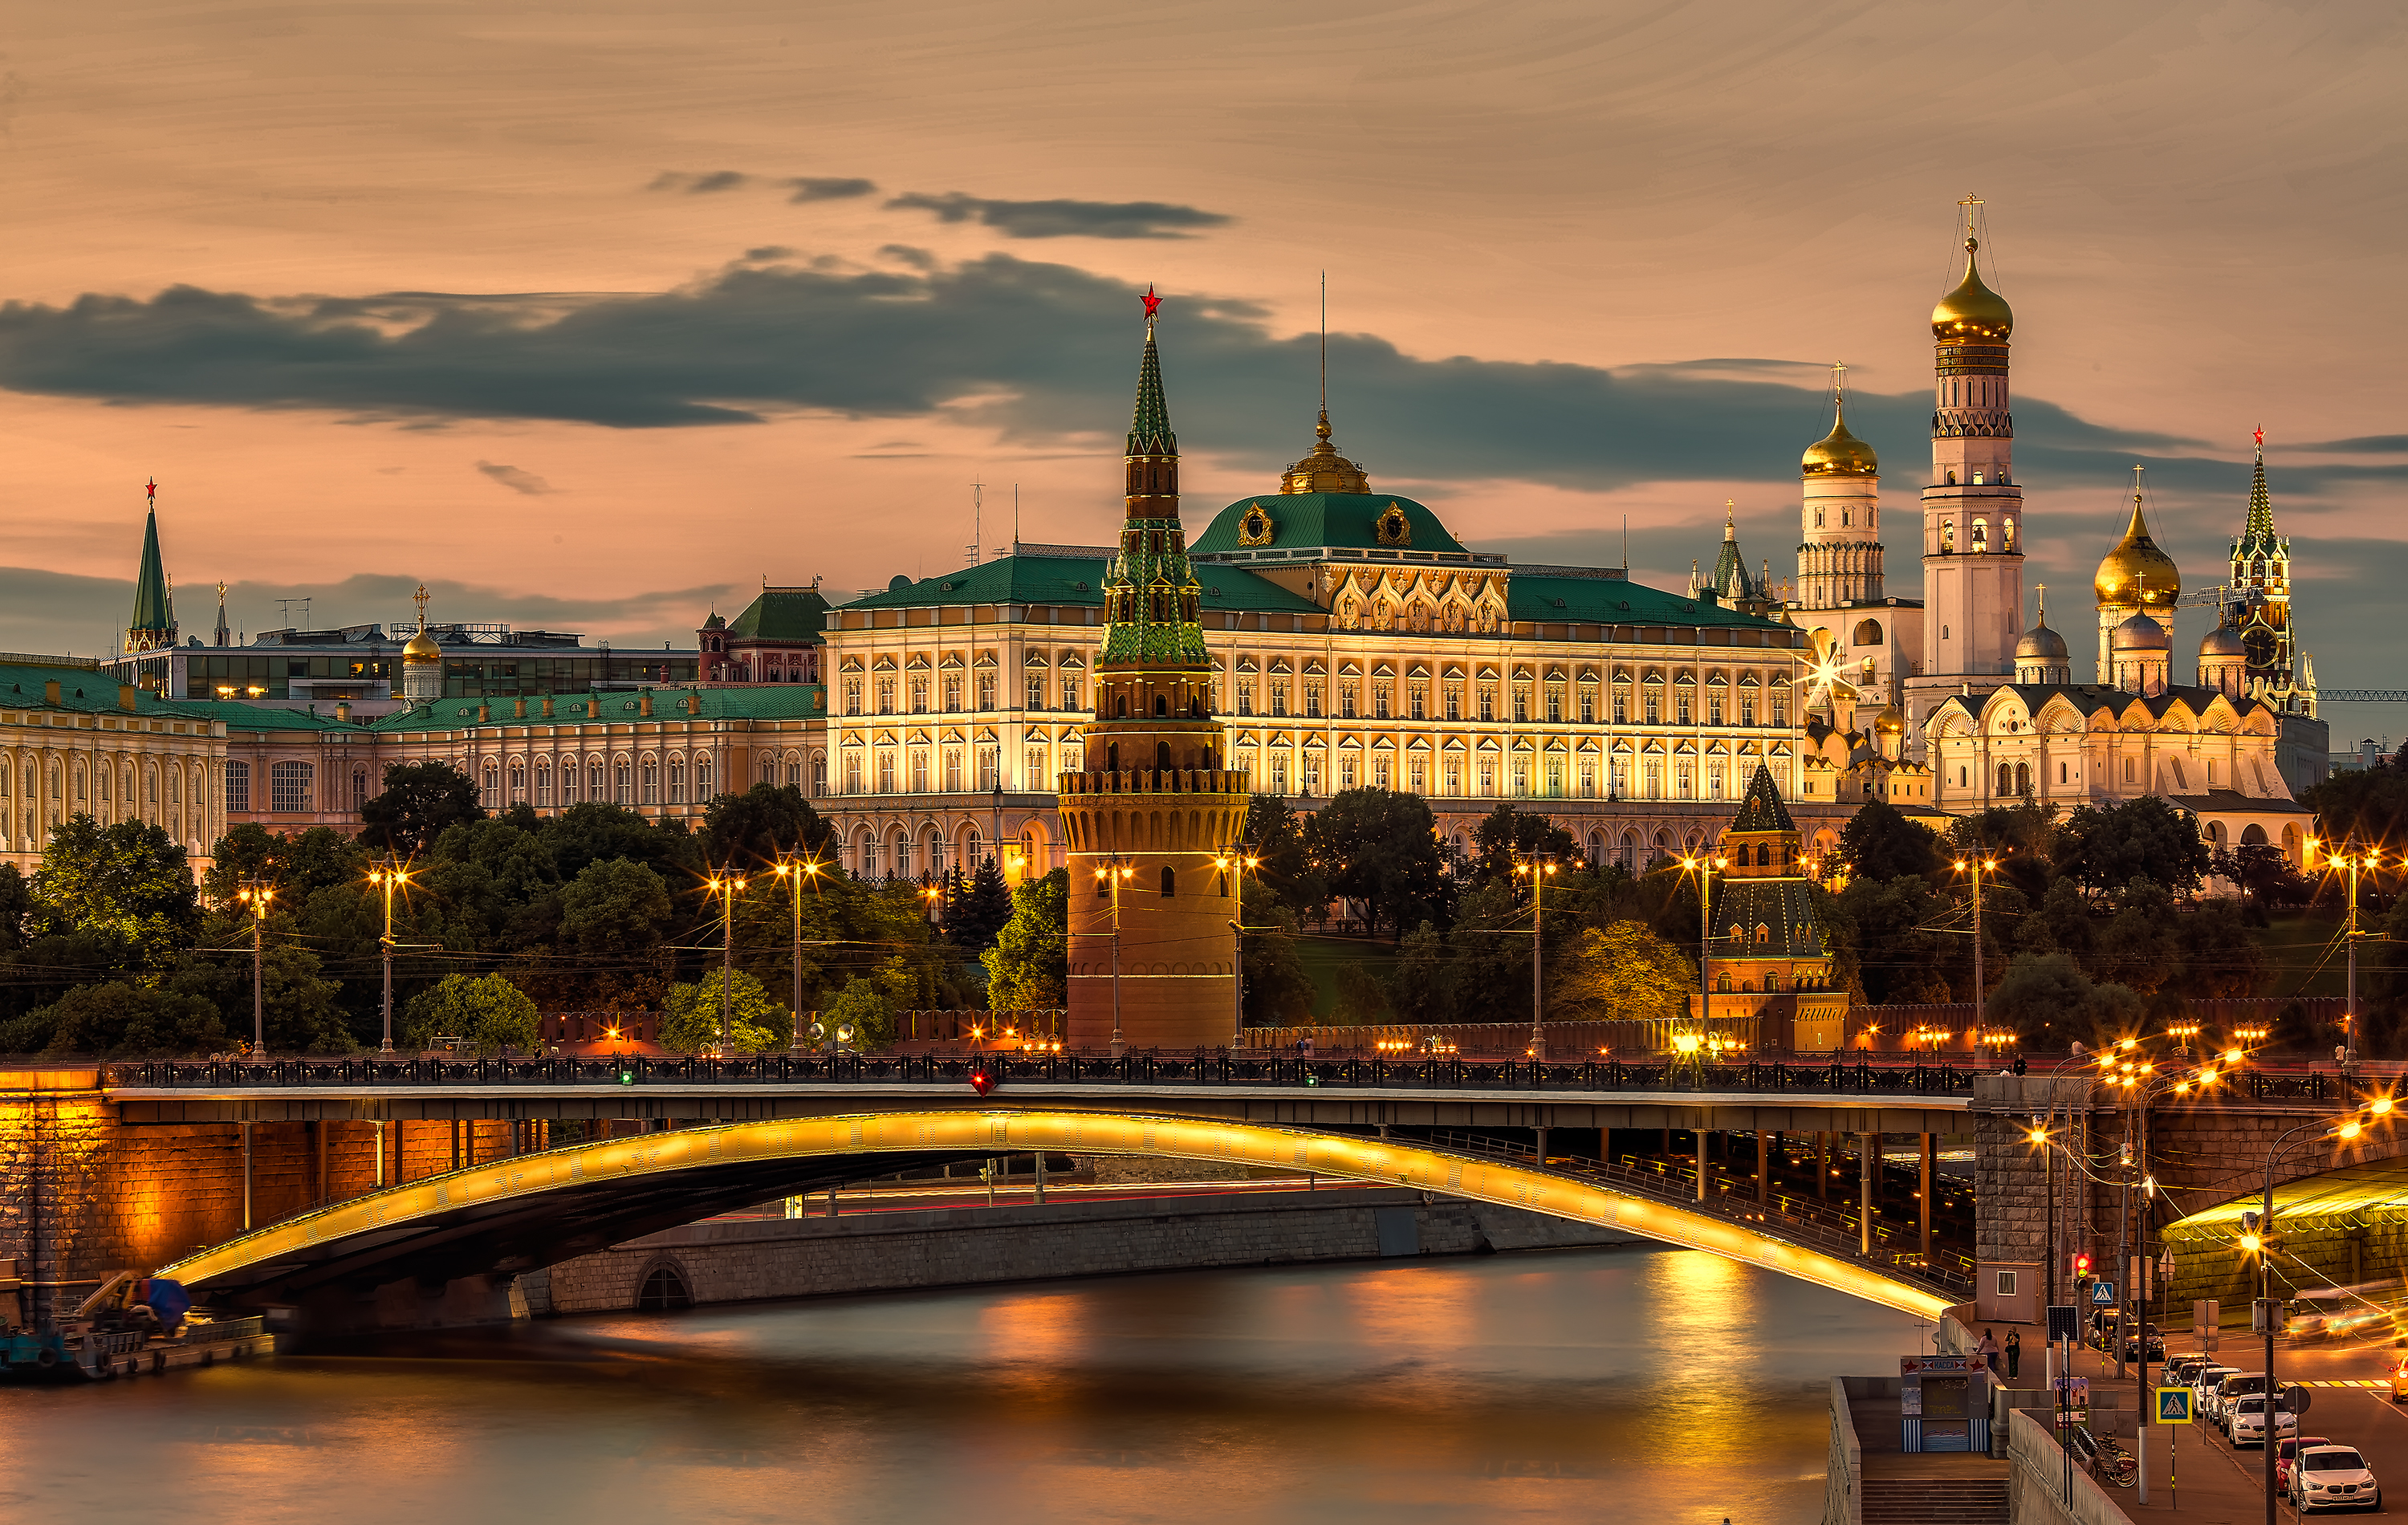 Moscow russia hd wallpaper background image 3000x1900 id 778271 wallpaper abyss - 4k wallpaper russia ...